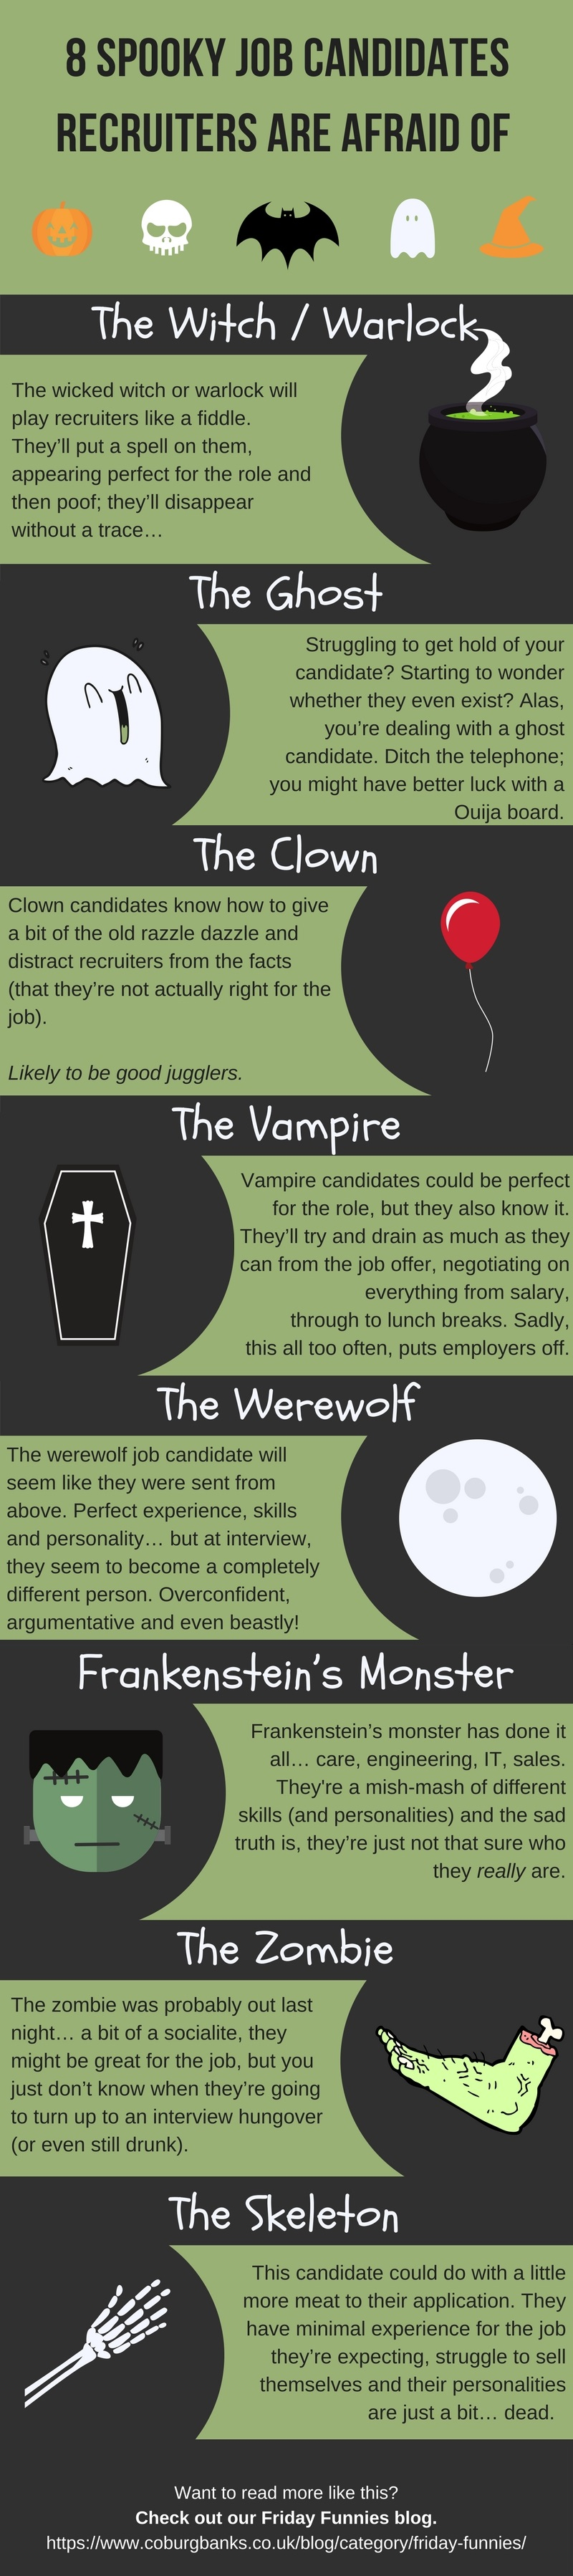 8 Spooky Job Candidates Recruiters Are Afraid Of